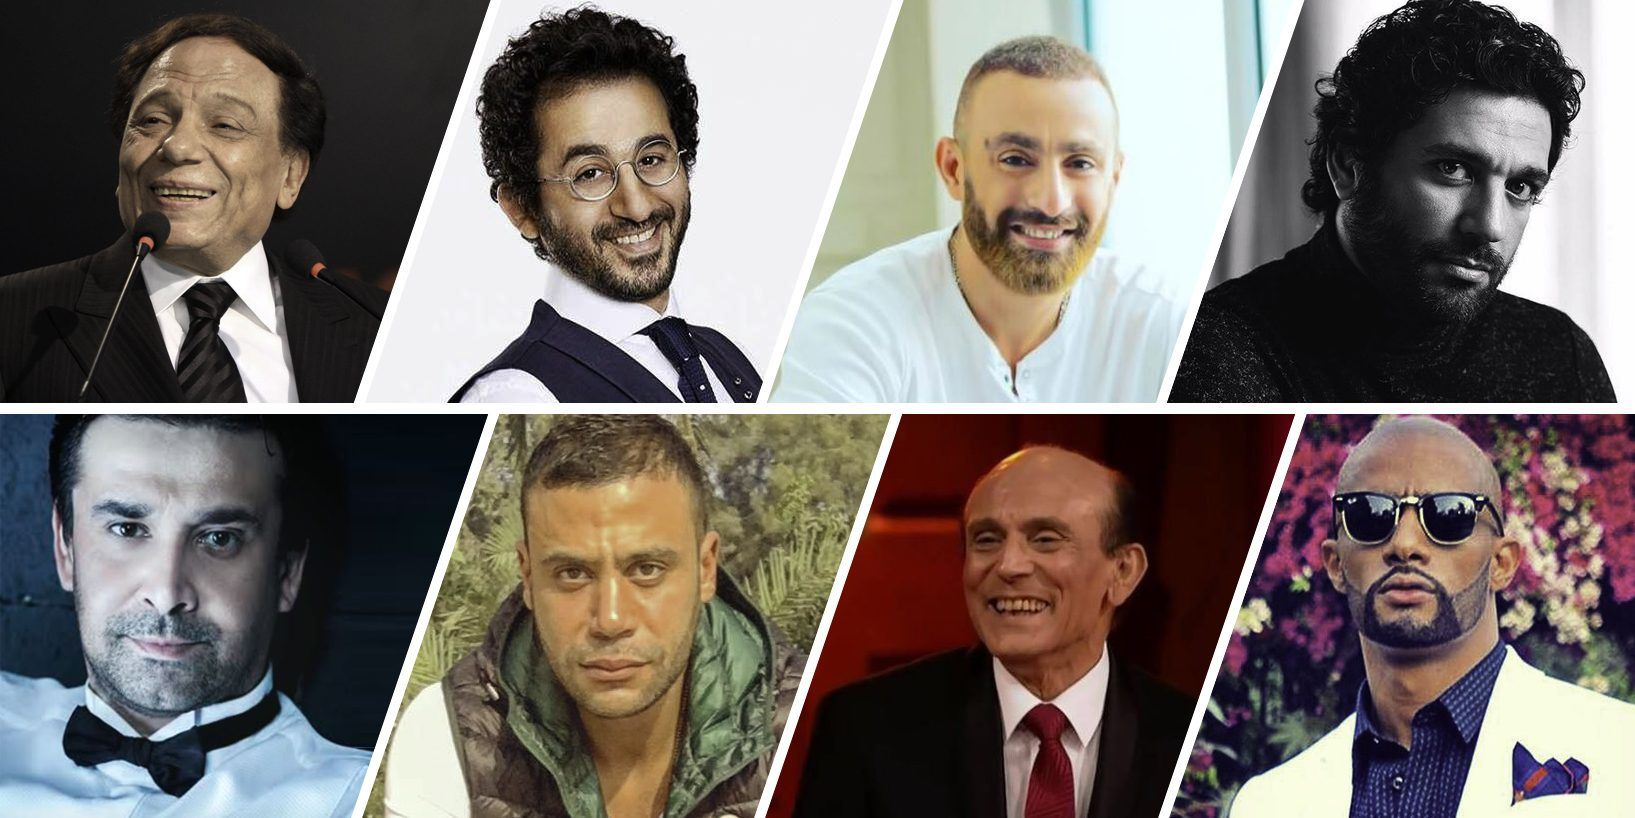 The Top 10 Arab Male Actors With Images Celebrities Social